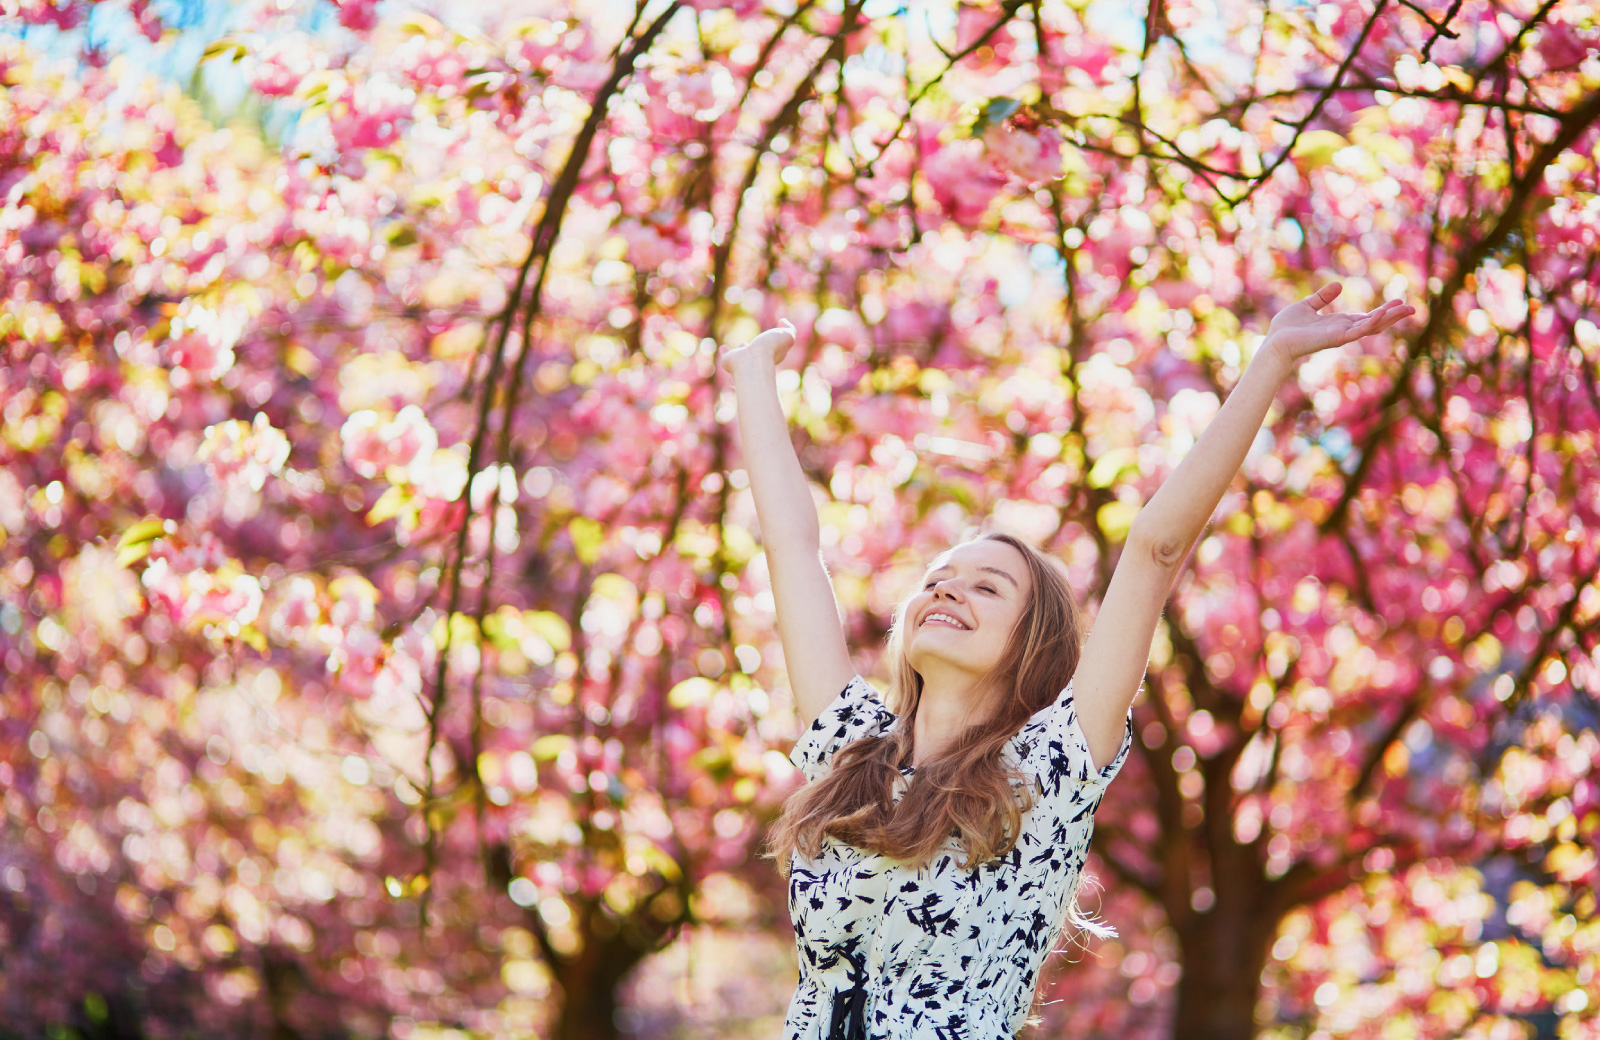 woman enjoying pink spring blossoms on trees in Upper East Side NYC park - The Cole